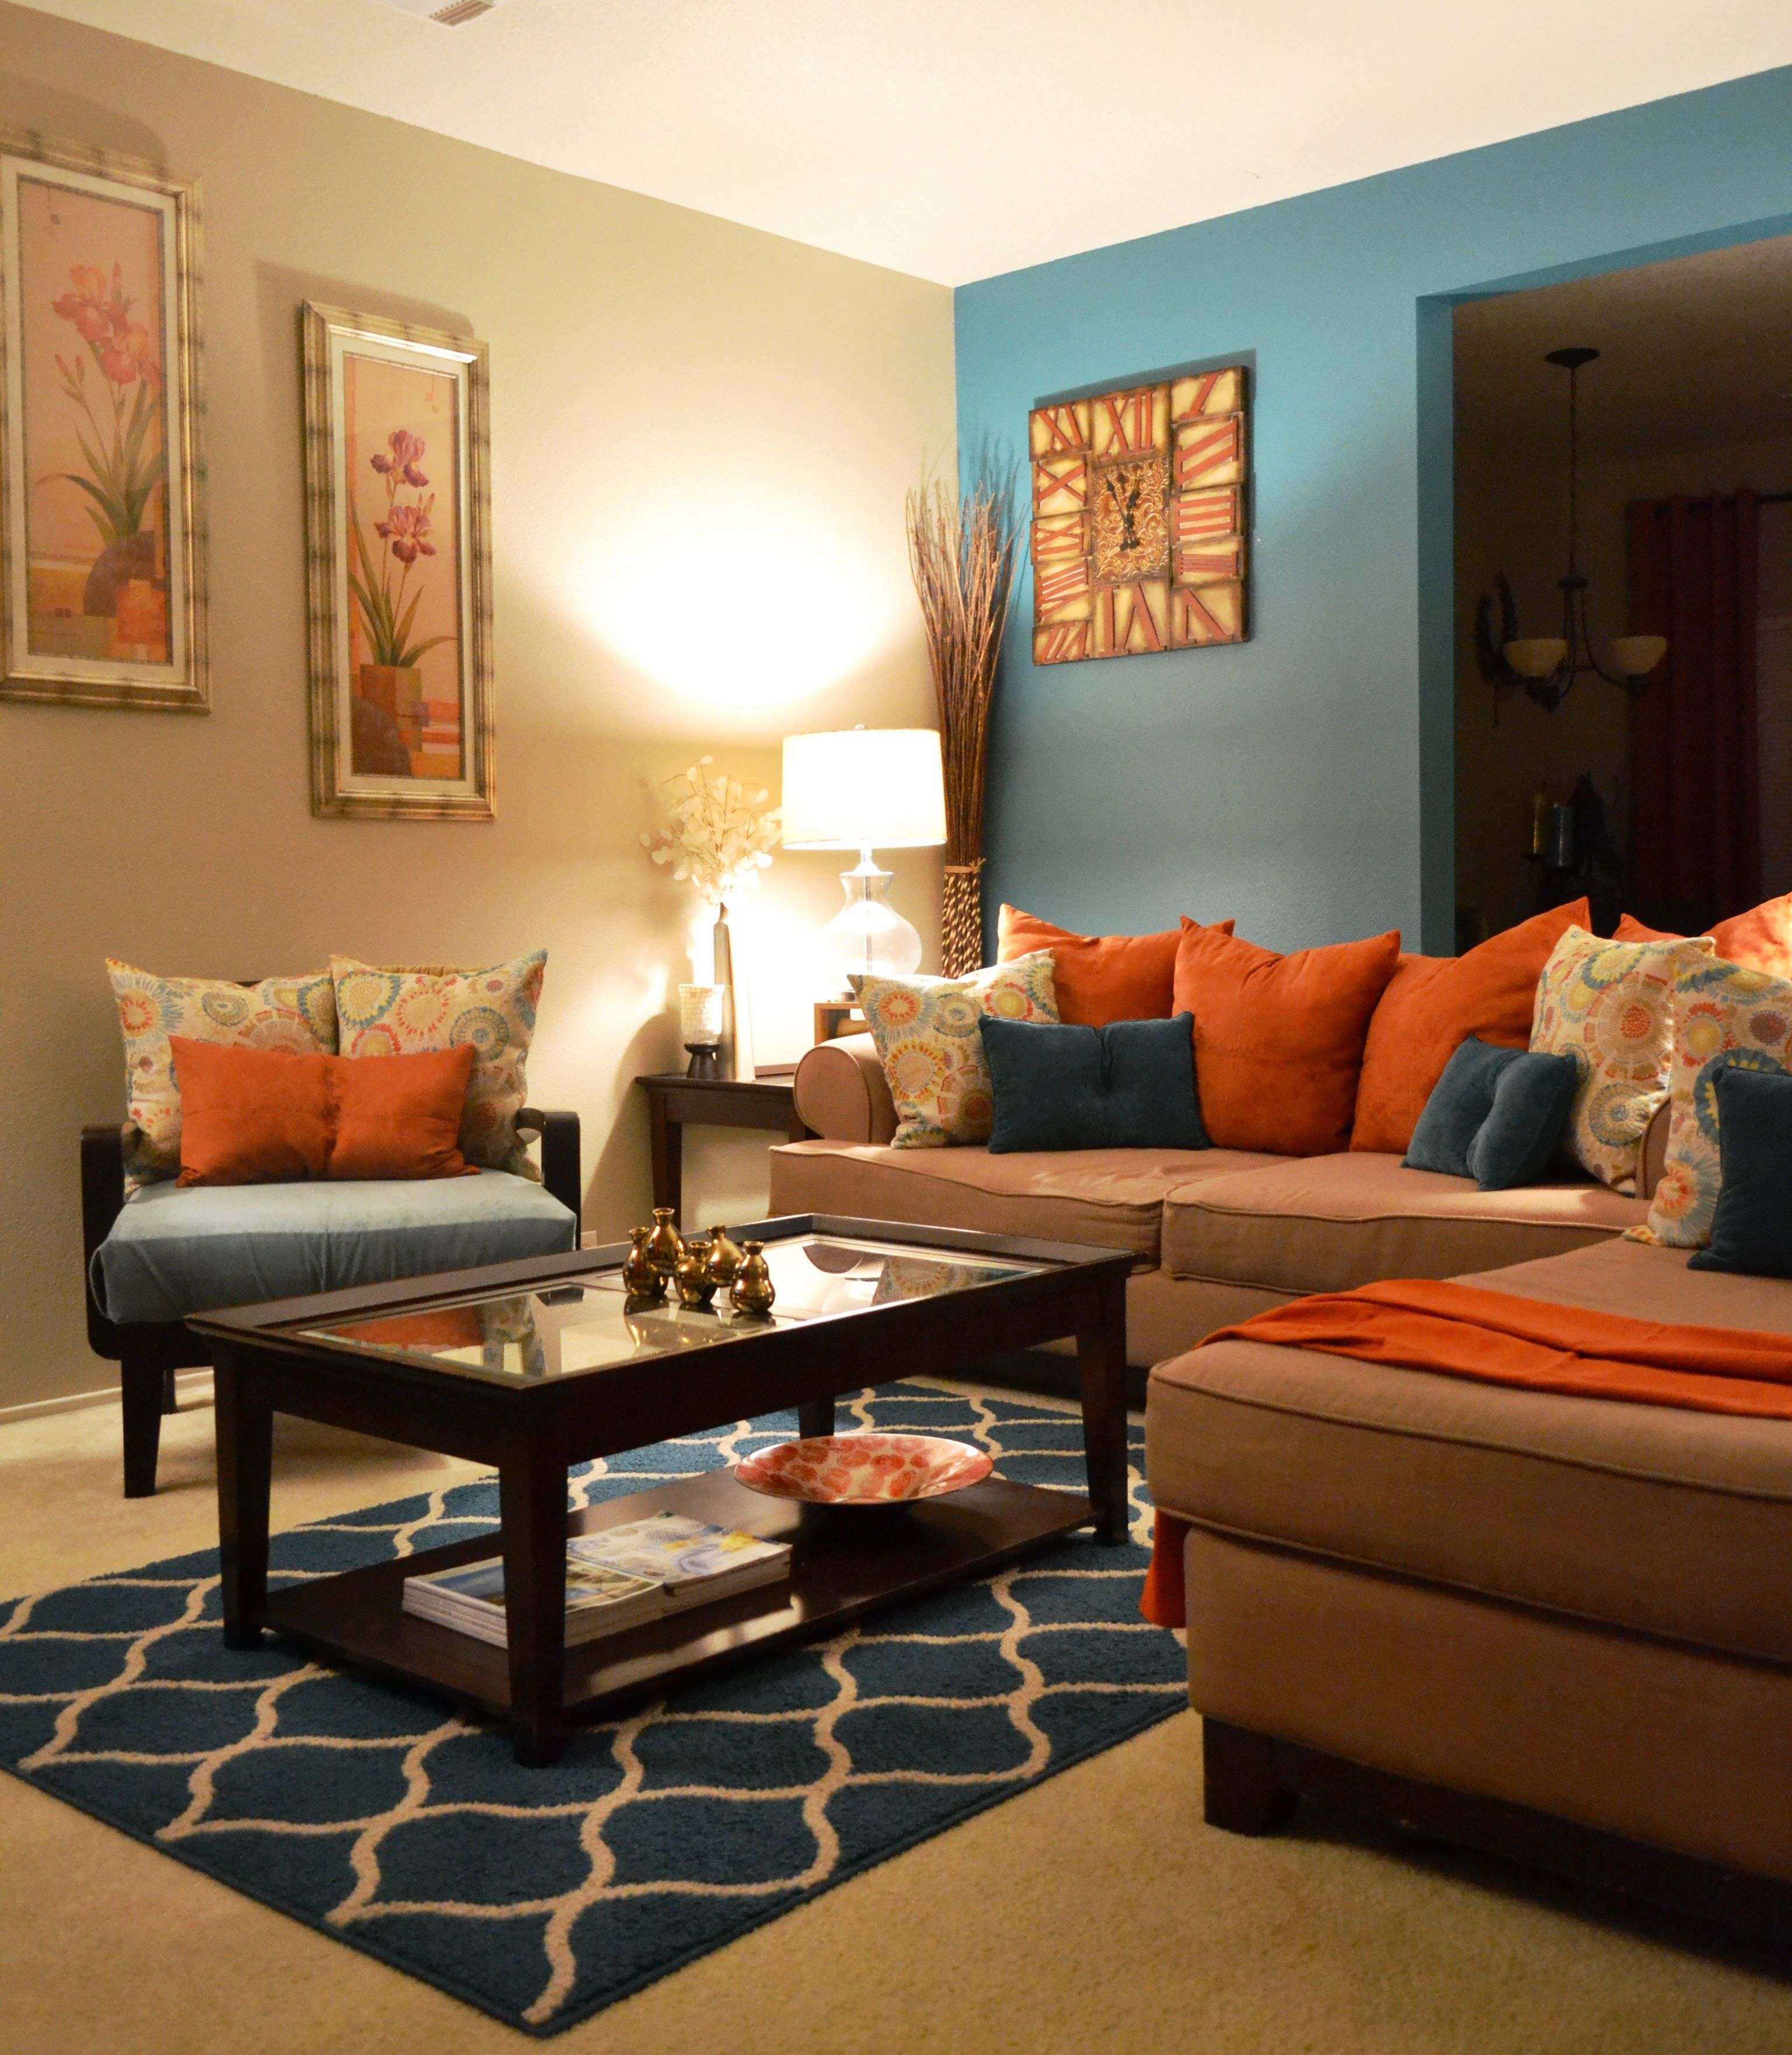 Rugs Coffee Table Pillows Teal Orange Living Room Behr Paint 730c 3 Castle Path Living Room Orange Living Room Color Schemes Burnt Orange Living Room